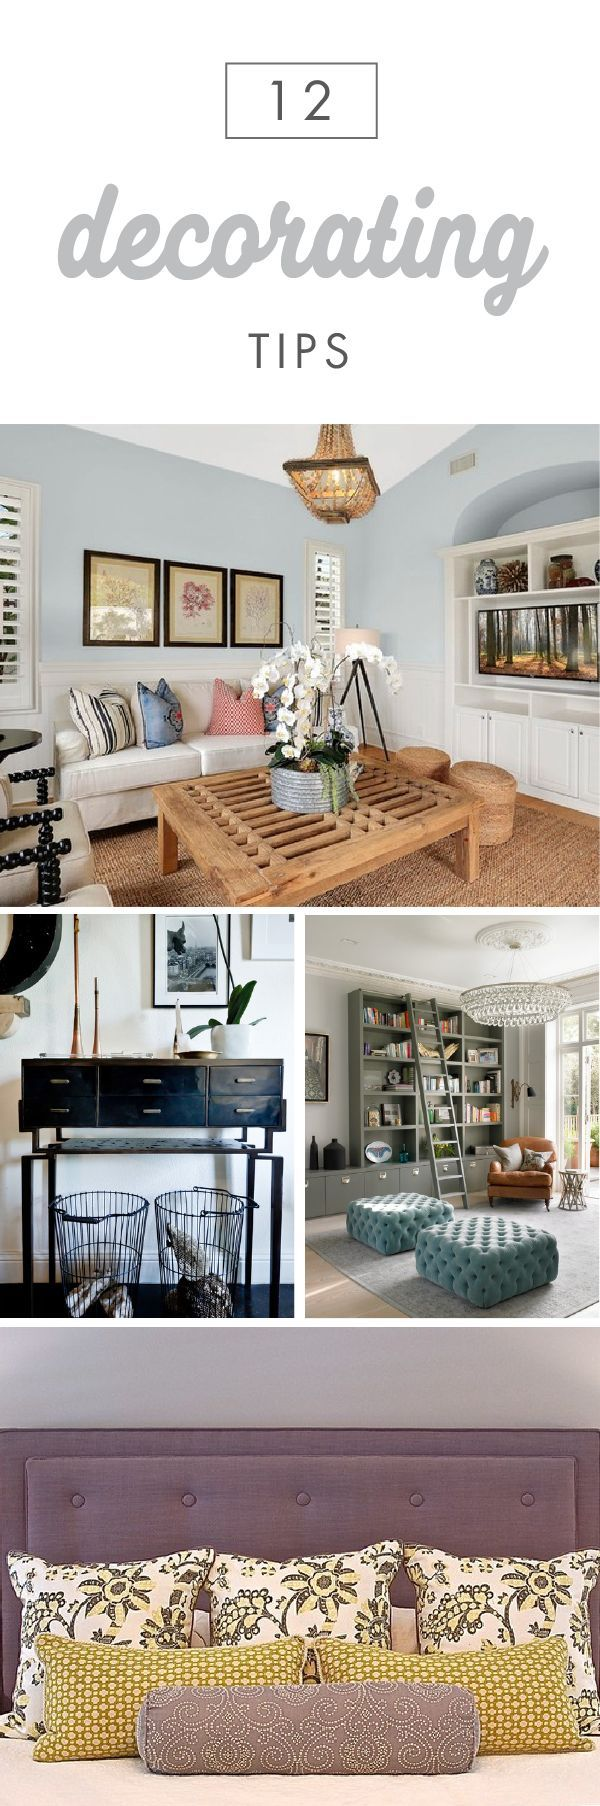 Sometimes You Just Need A Home Decor Refresh This Collection Of 12 Decorating T Home Decors Home Decor Home Sweet Home